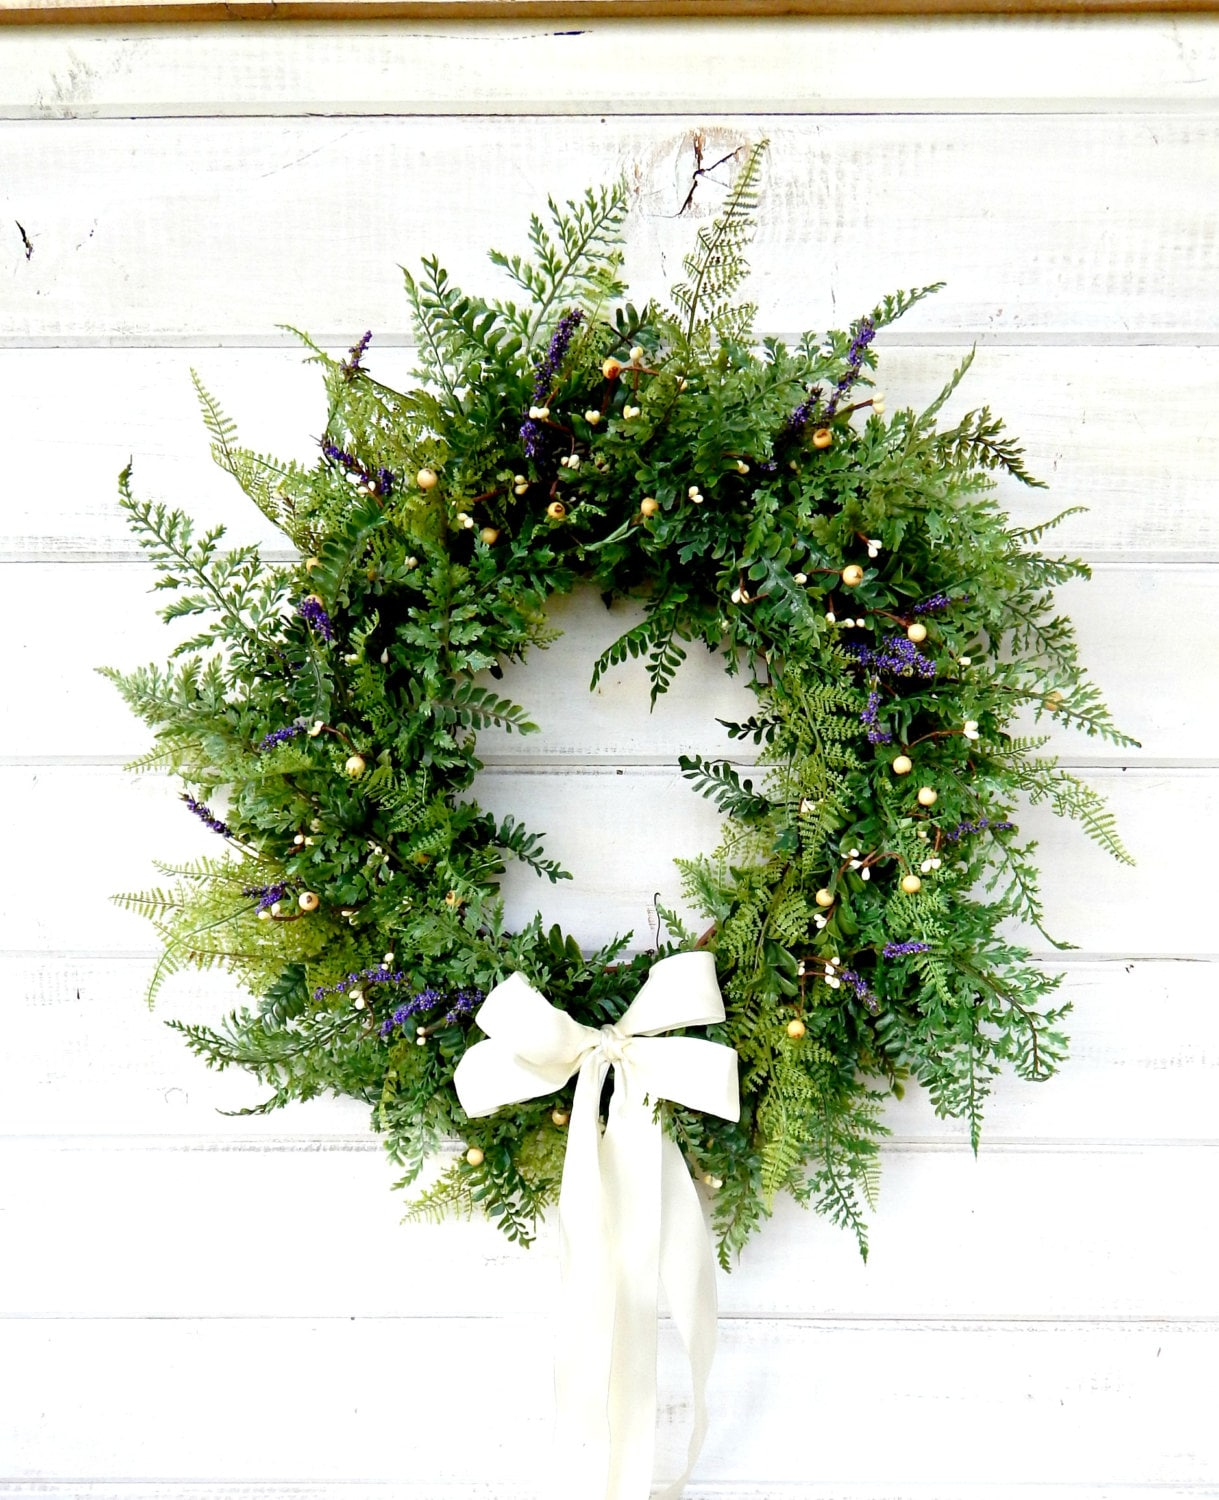 Fern Wreath Summer Wedding Wreath PURPLE U0026 WHITE FERN Wreath Front Door  Decor Garden Wedding Country Chic Home Decor Scented Wreath Custom